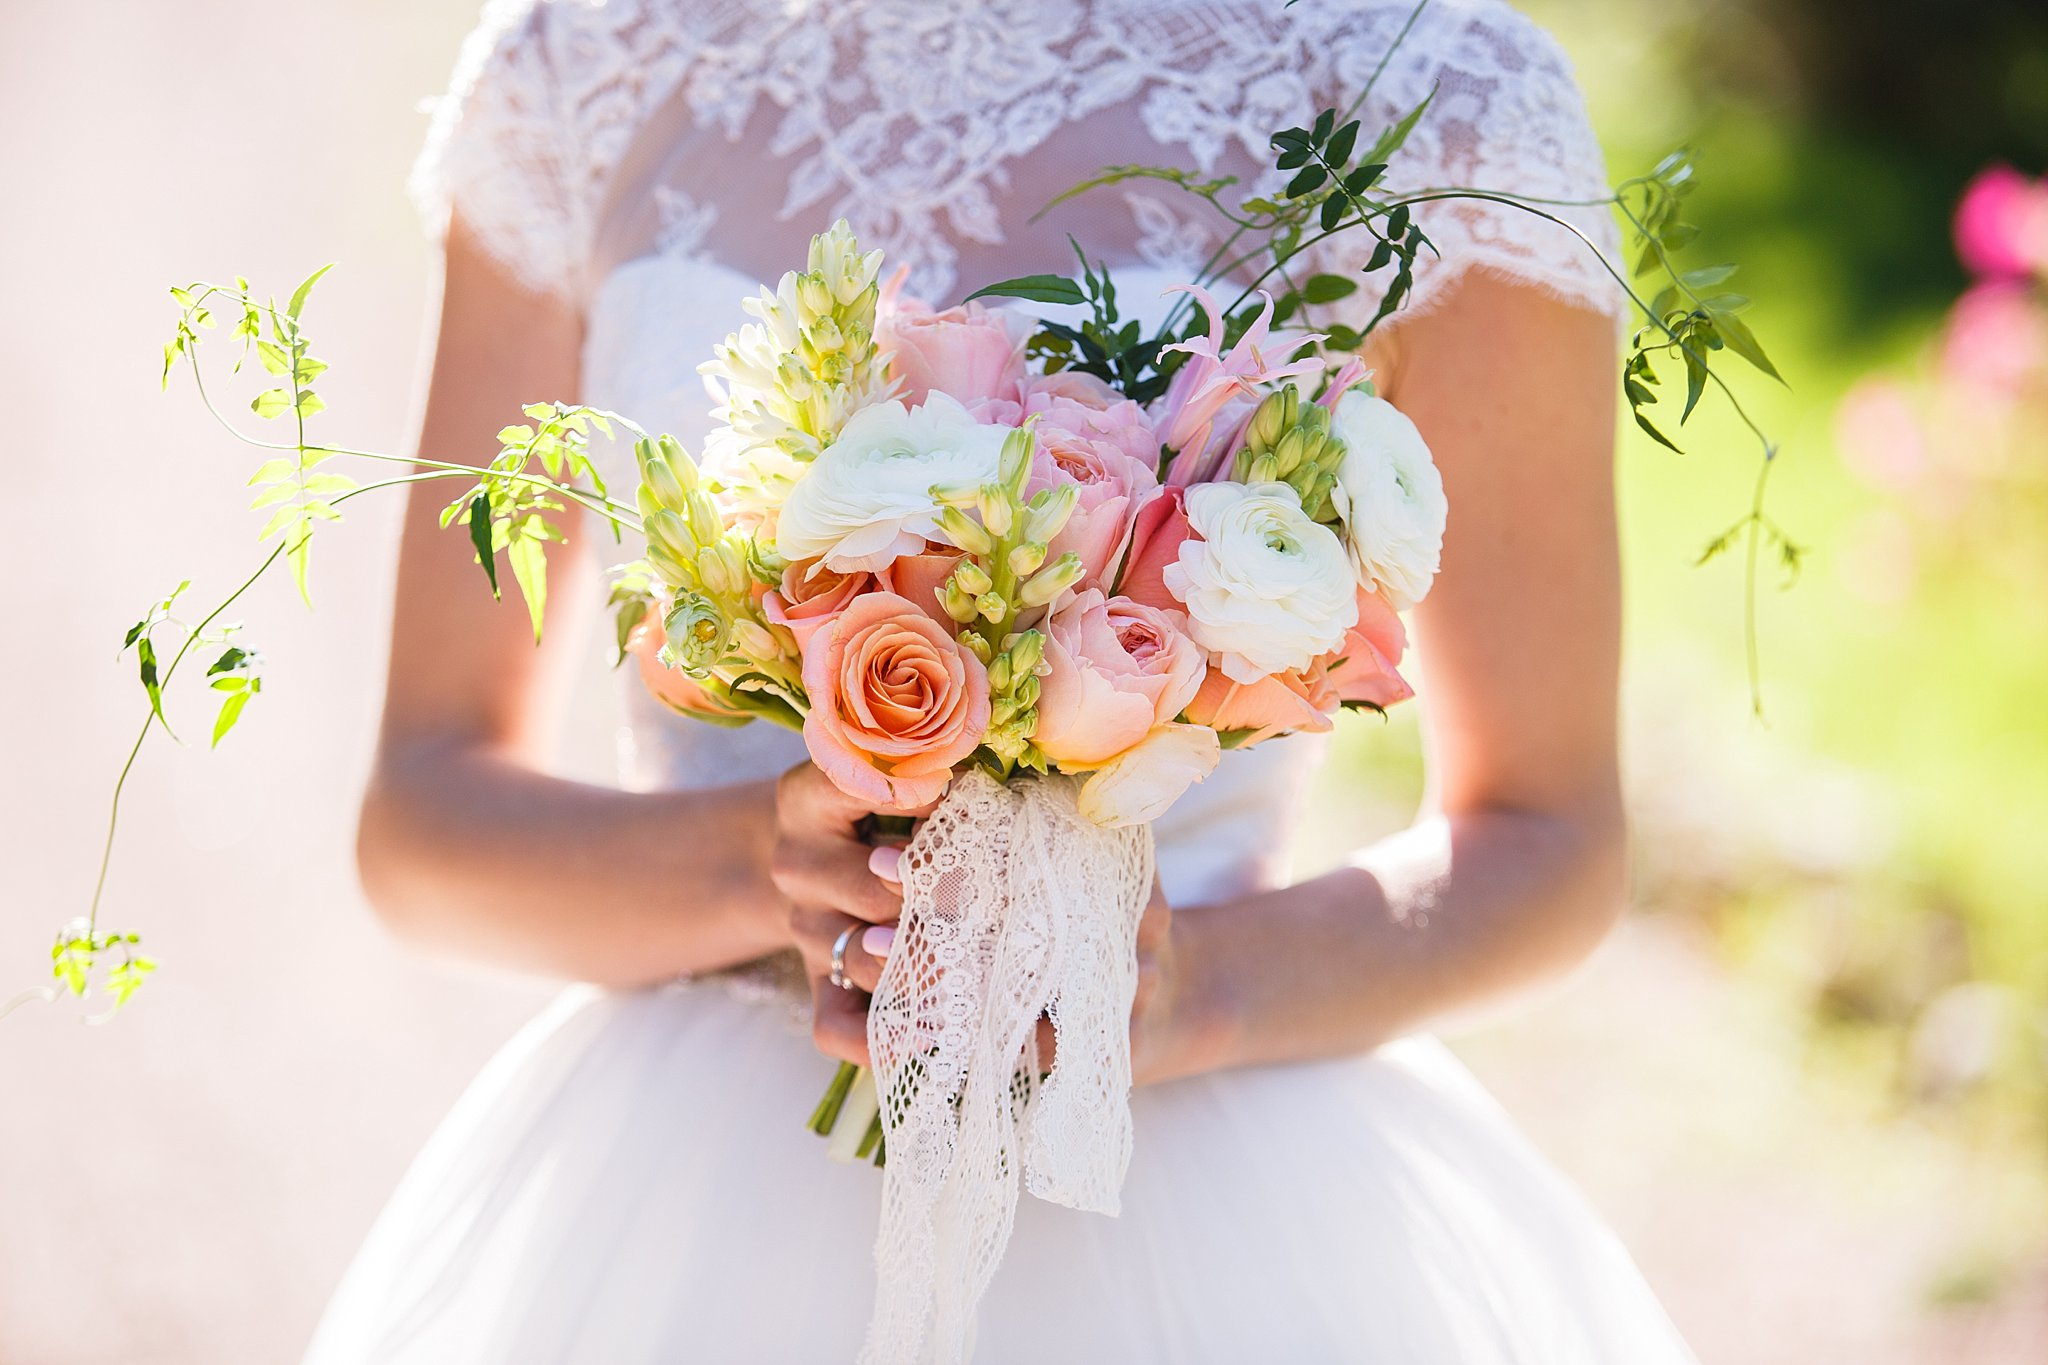 beautiful wedding bouquet in the hands of the bride